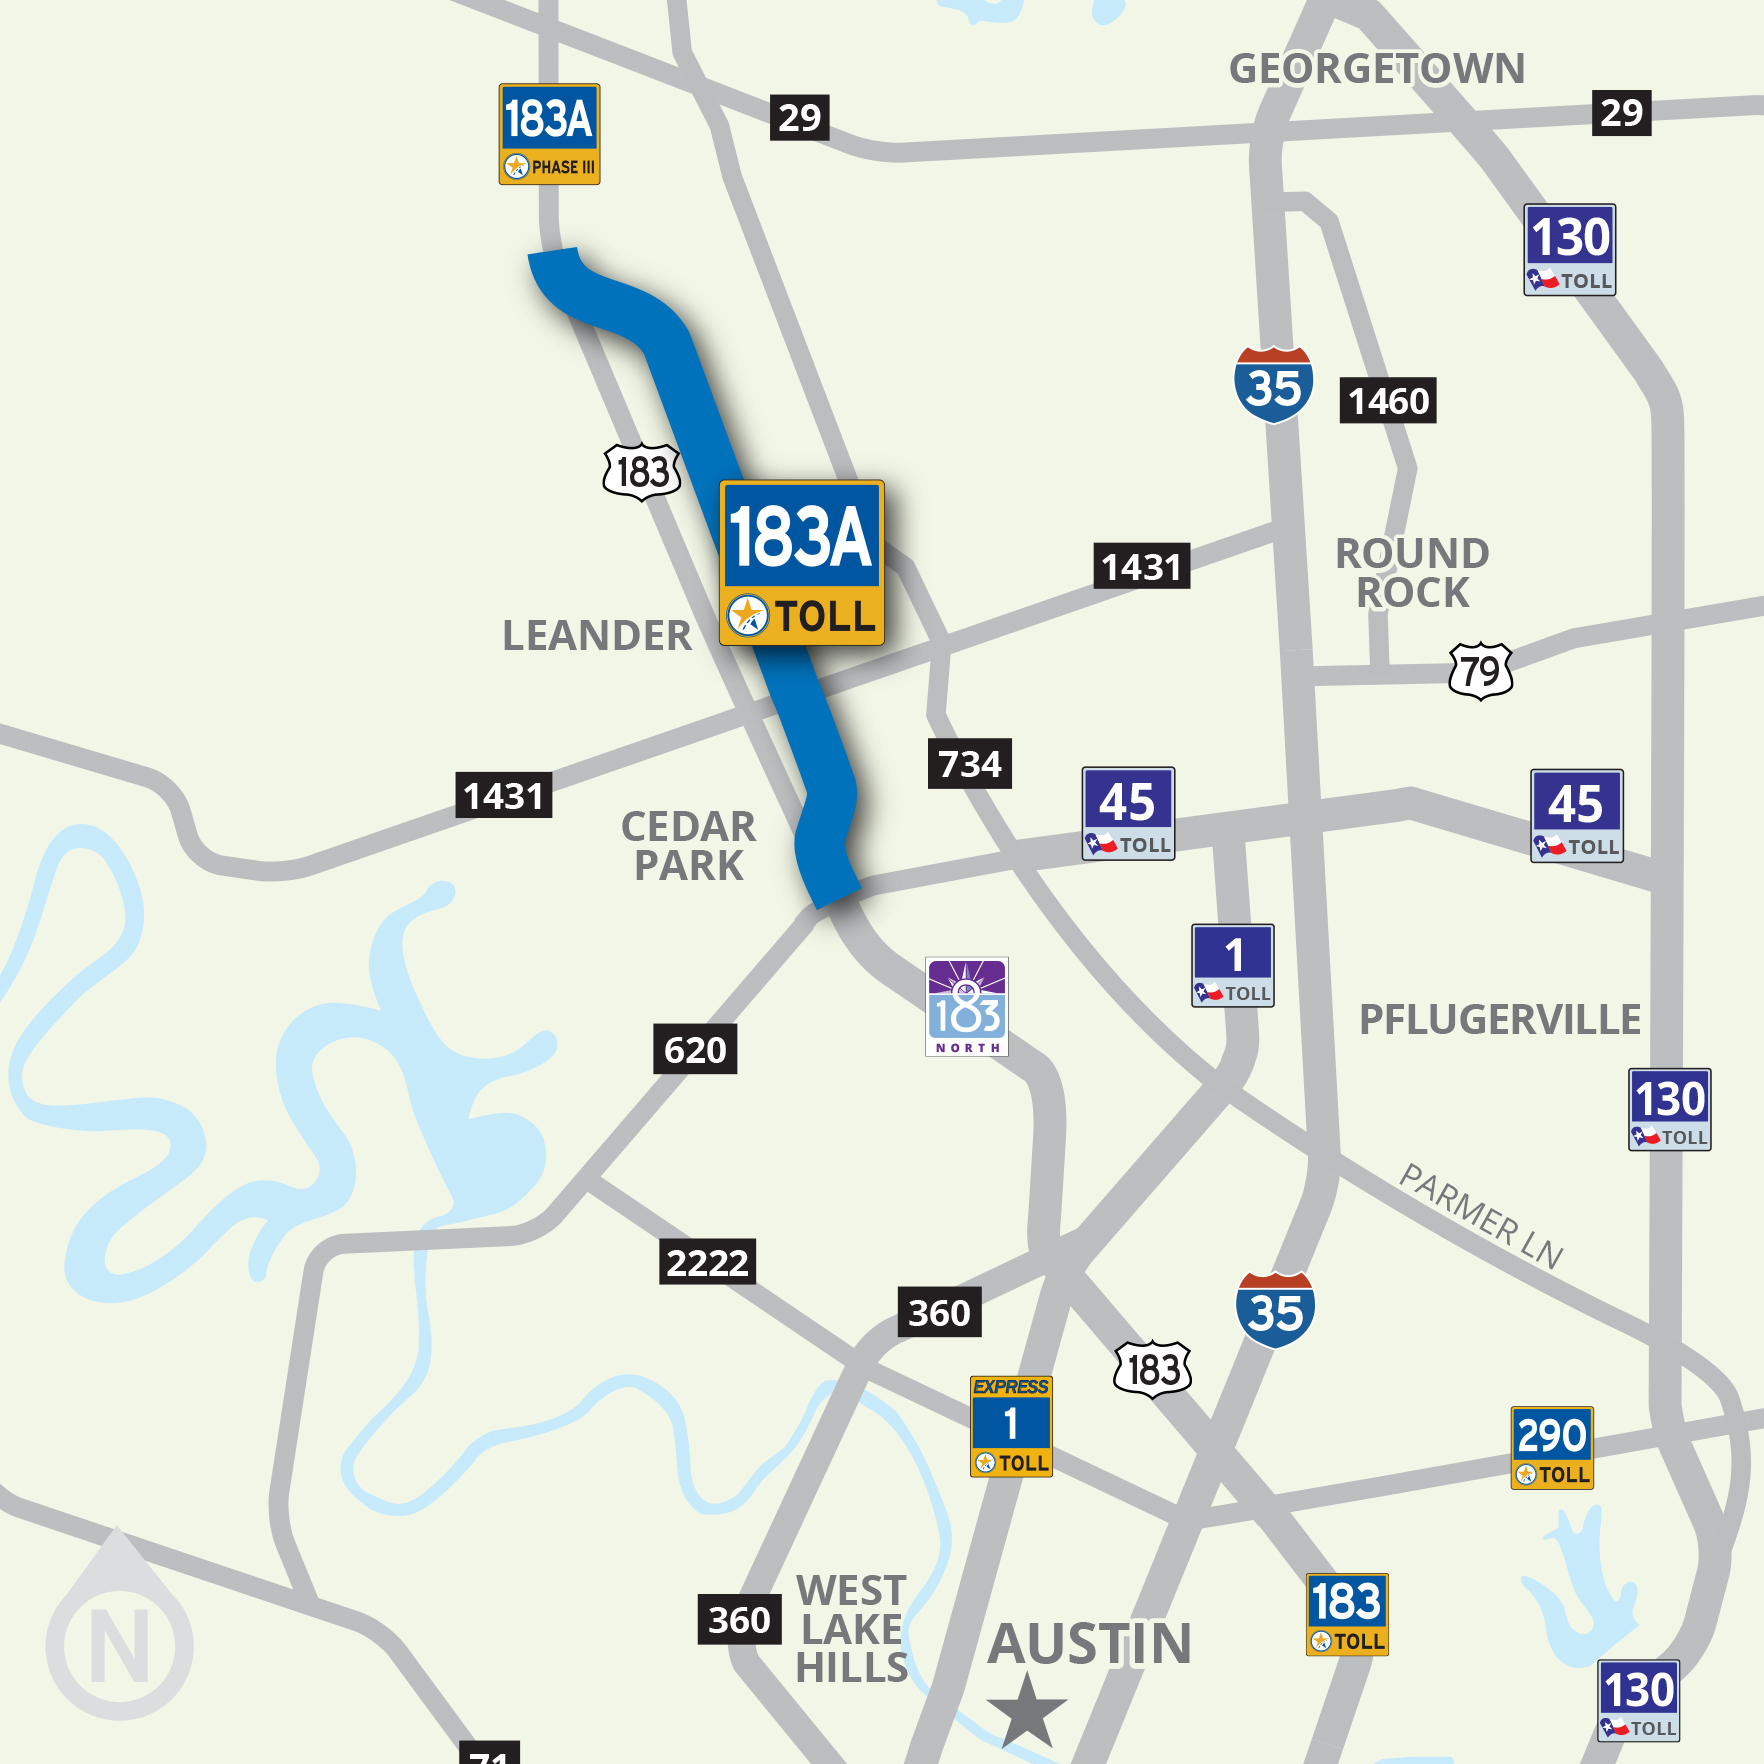 183A Toll | Central Texas Regional Mobility Authority Map Of Toll Roads In Austin on oklahoma city map toll roads, map indiana toll roads, map of sh130, map of austin restaurants, map houston toll roads, map texas toll roads, map of austin traffic, texas dot toll roads, map of austin public transportation, map of austin light rail, map of austin hospitals, map of austin golf courses, map of austin expressways, map of austin schools,